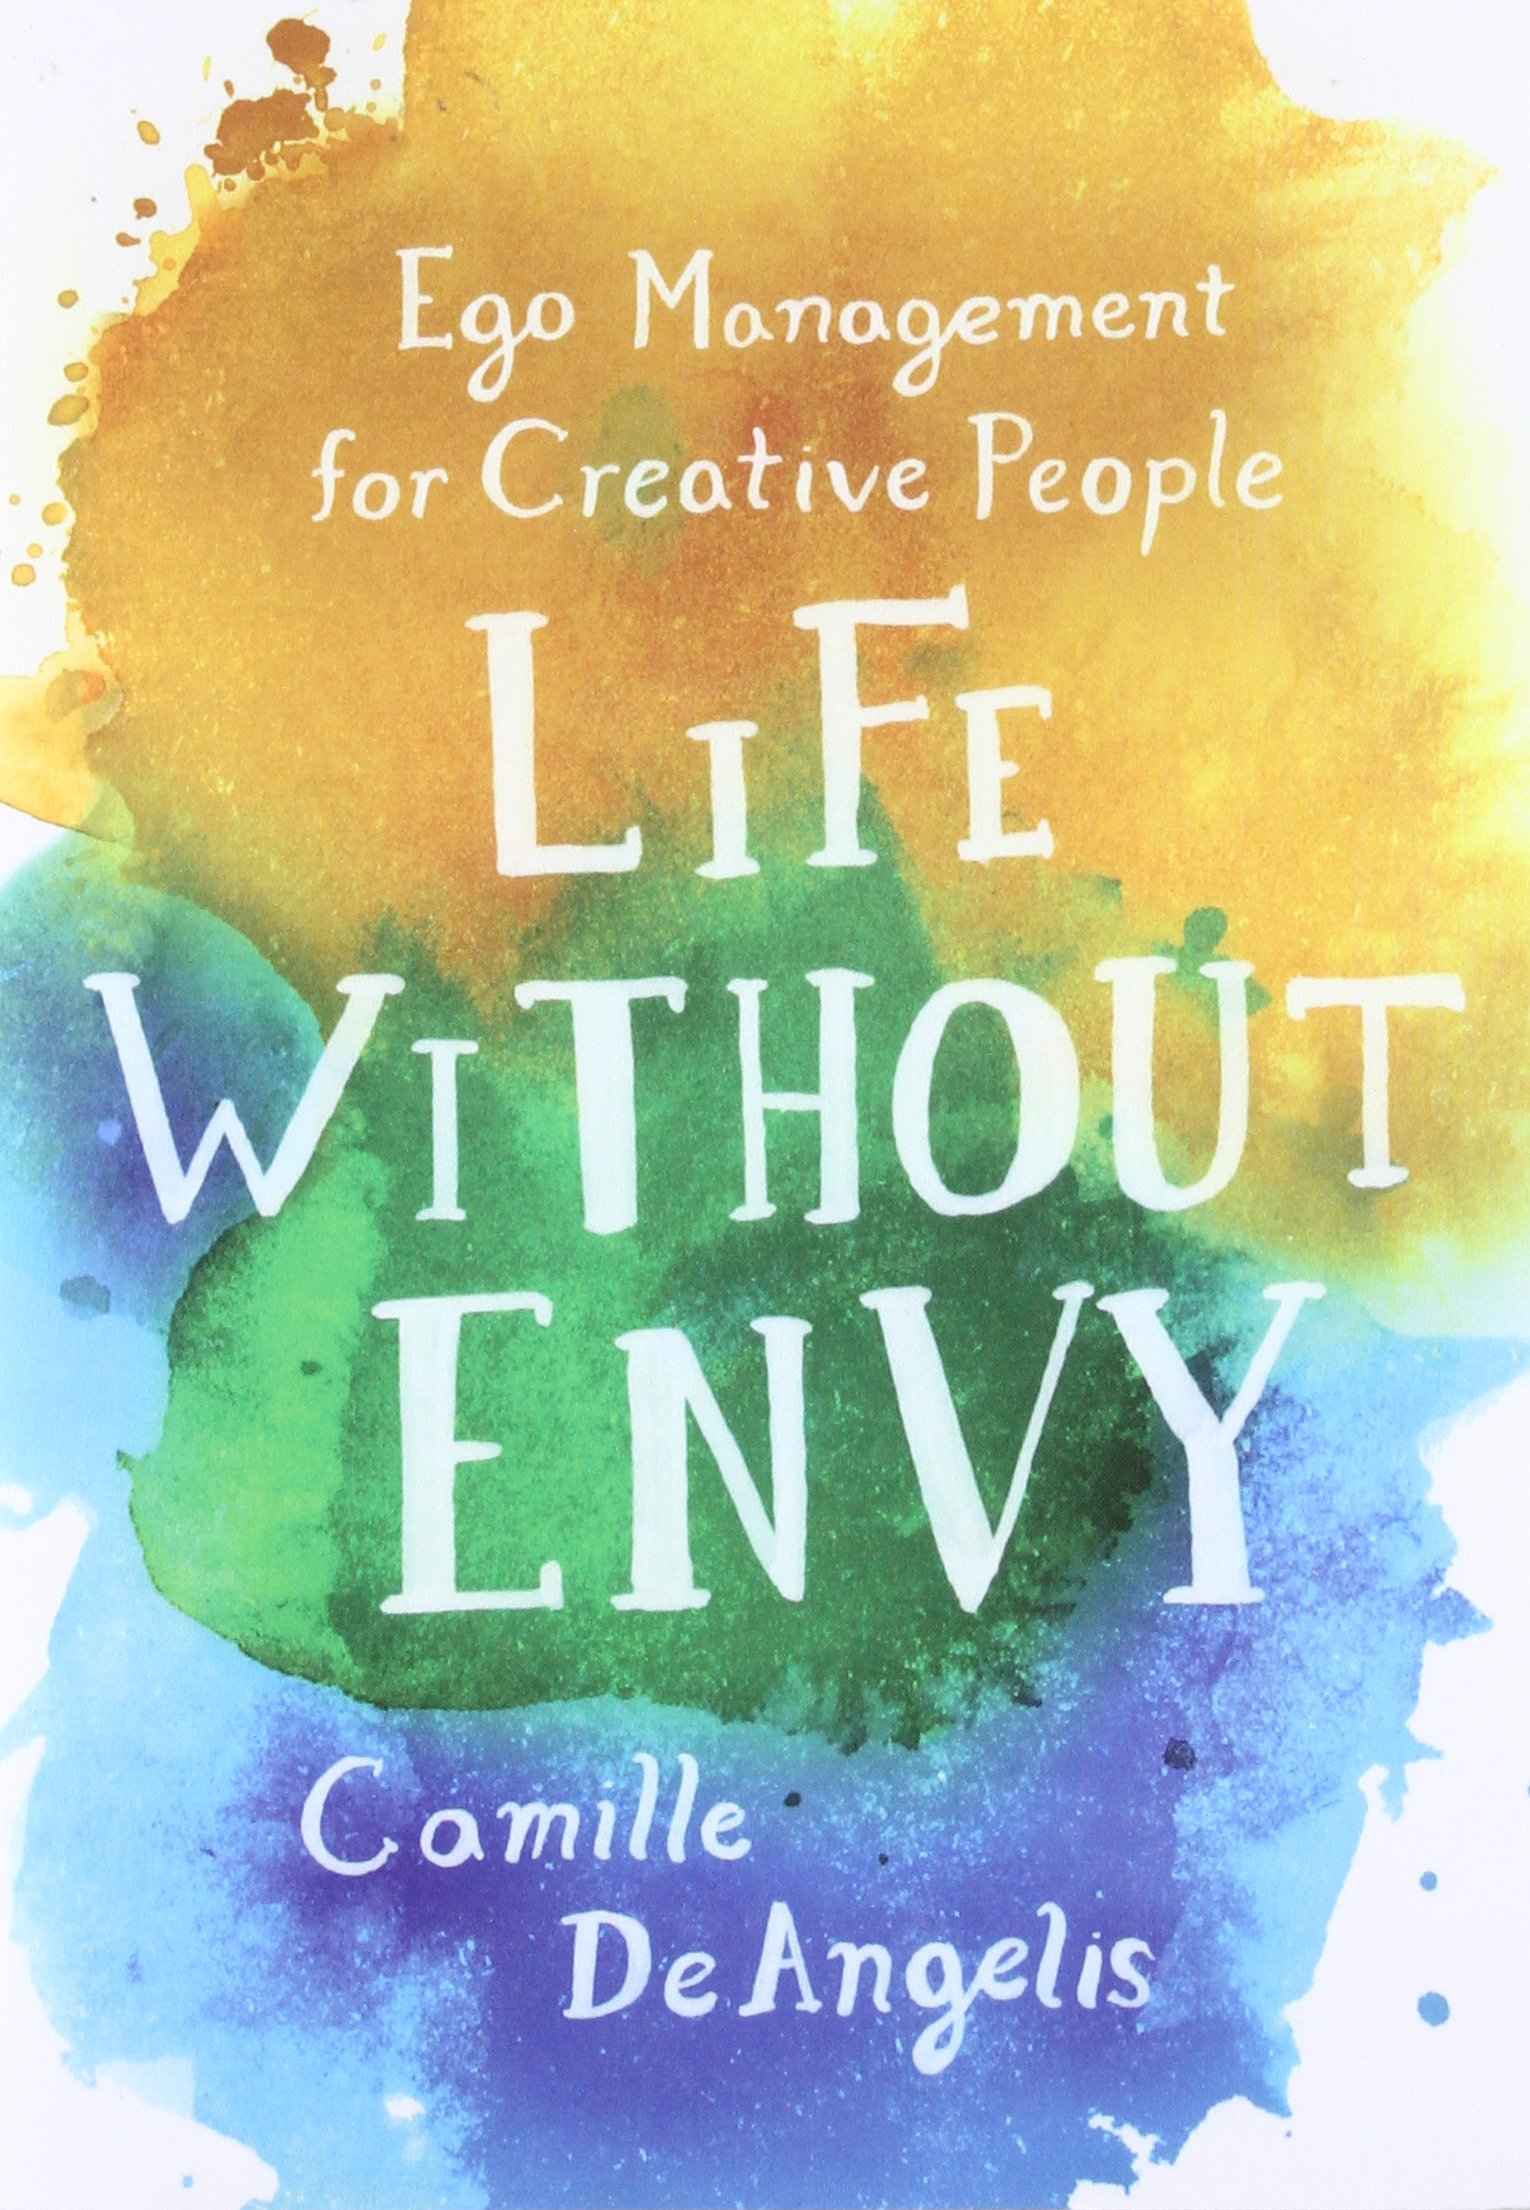 Life without envy ego management for creative people camille life without envy ego management for creative people camille deangelis 9781250099341 amazon books malvernweather